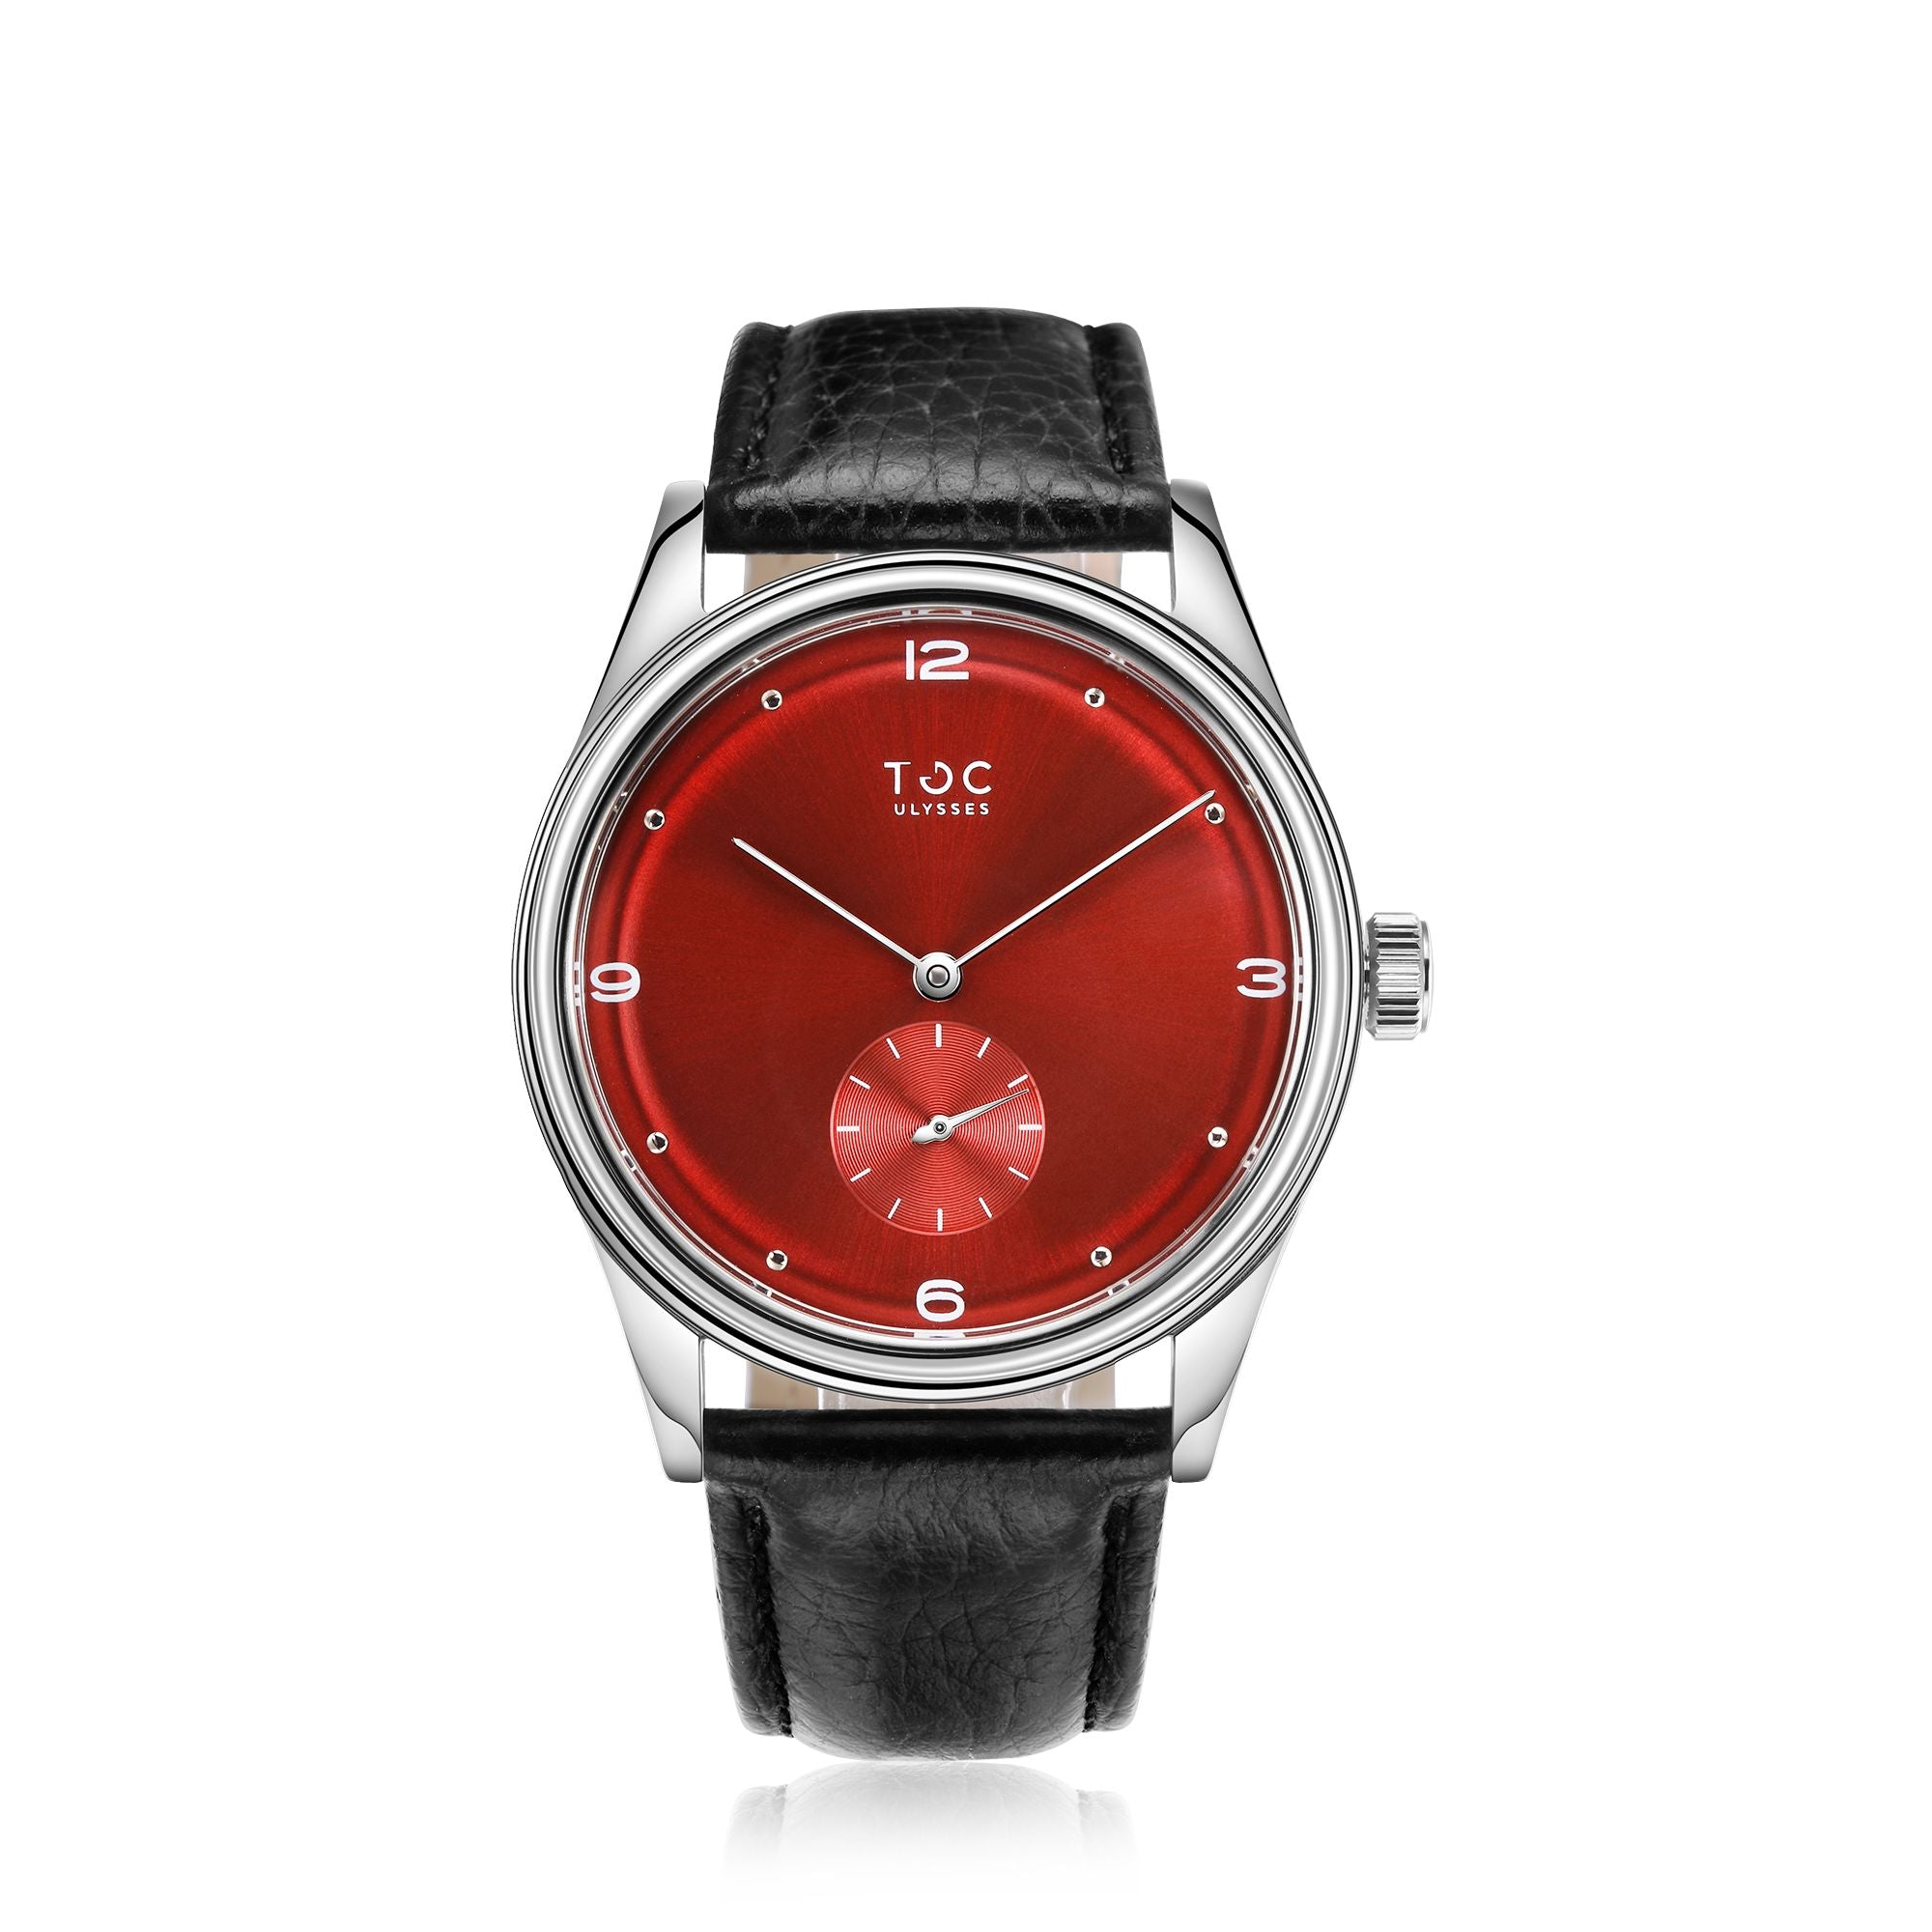 strap gallery watches normal fendi watch silver stainless accessories momento leather lyst product steel alligator lady red